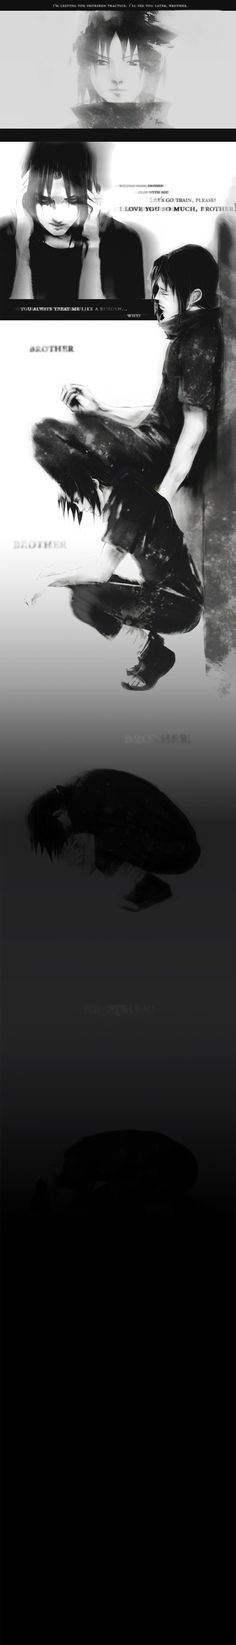 Sad :'(. Why I love anime/manga. It represents the real parts of life in it's own way artfully.